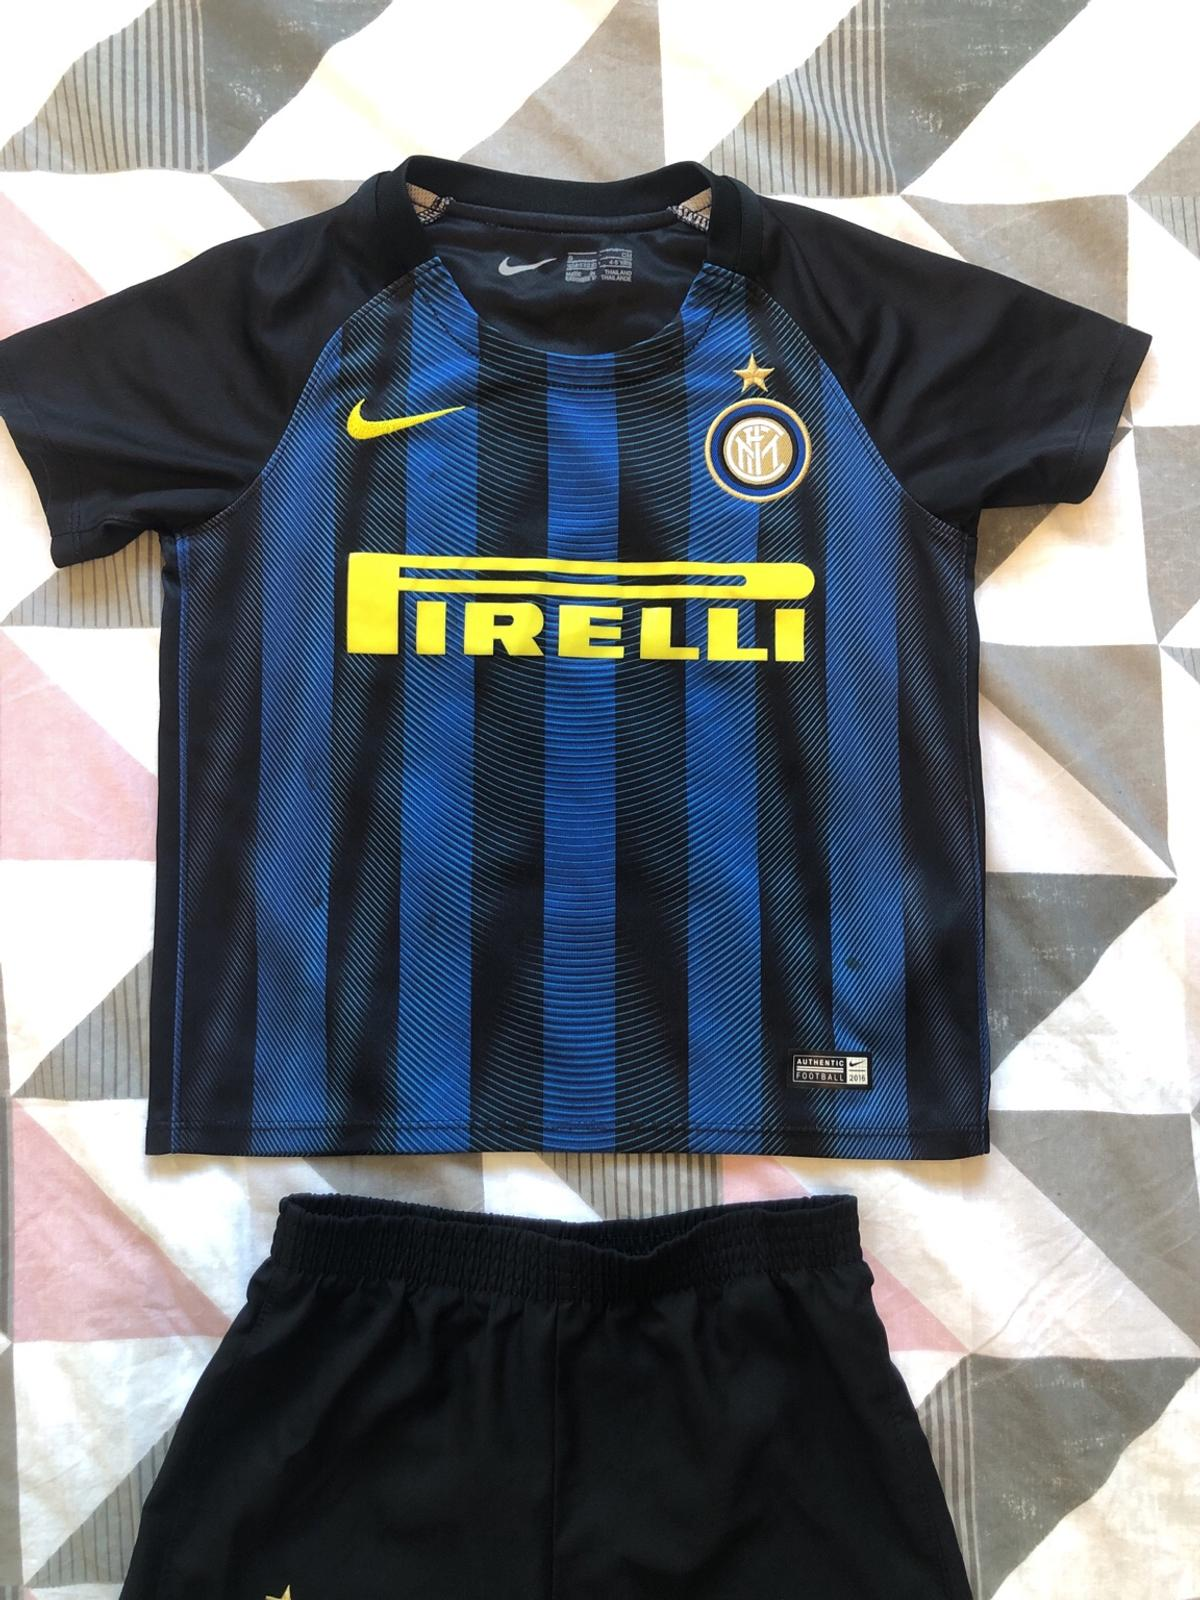 low priced 5be89 575a8 Nike Inter Milan football kit age 4-5 years